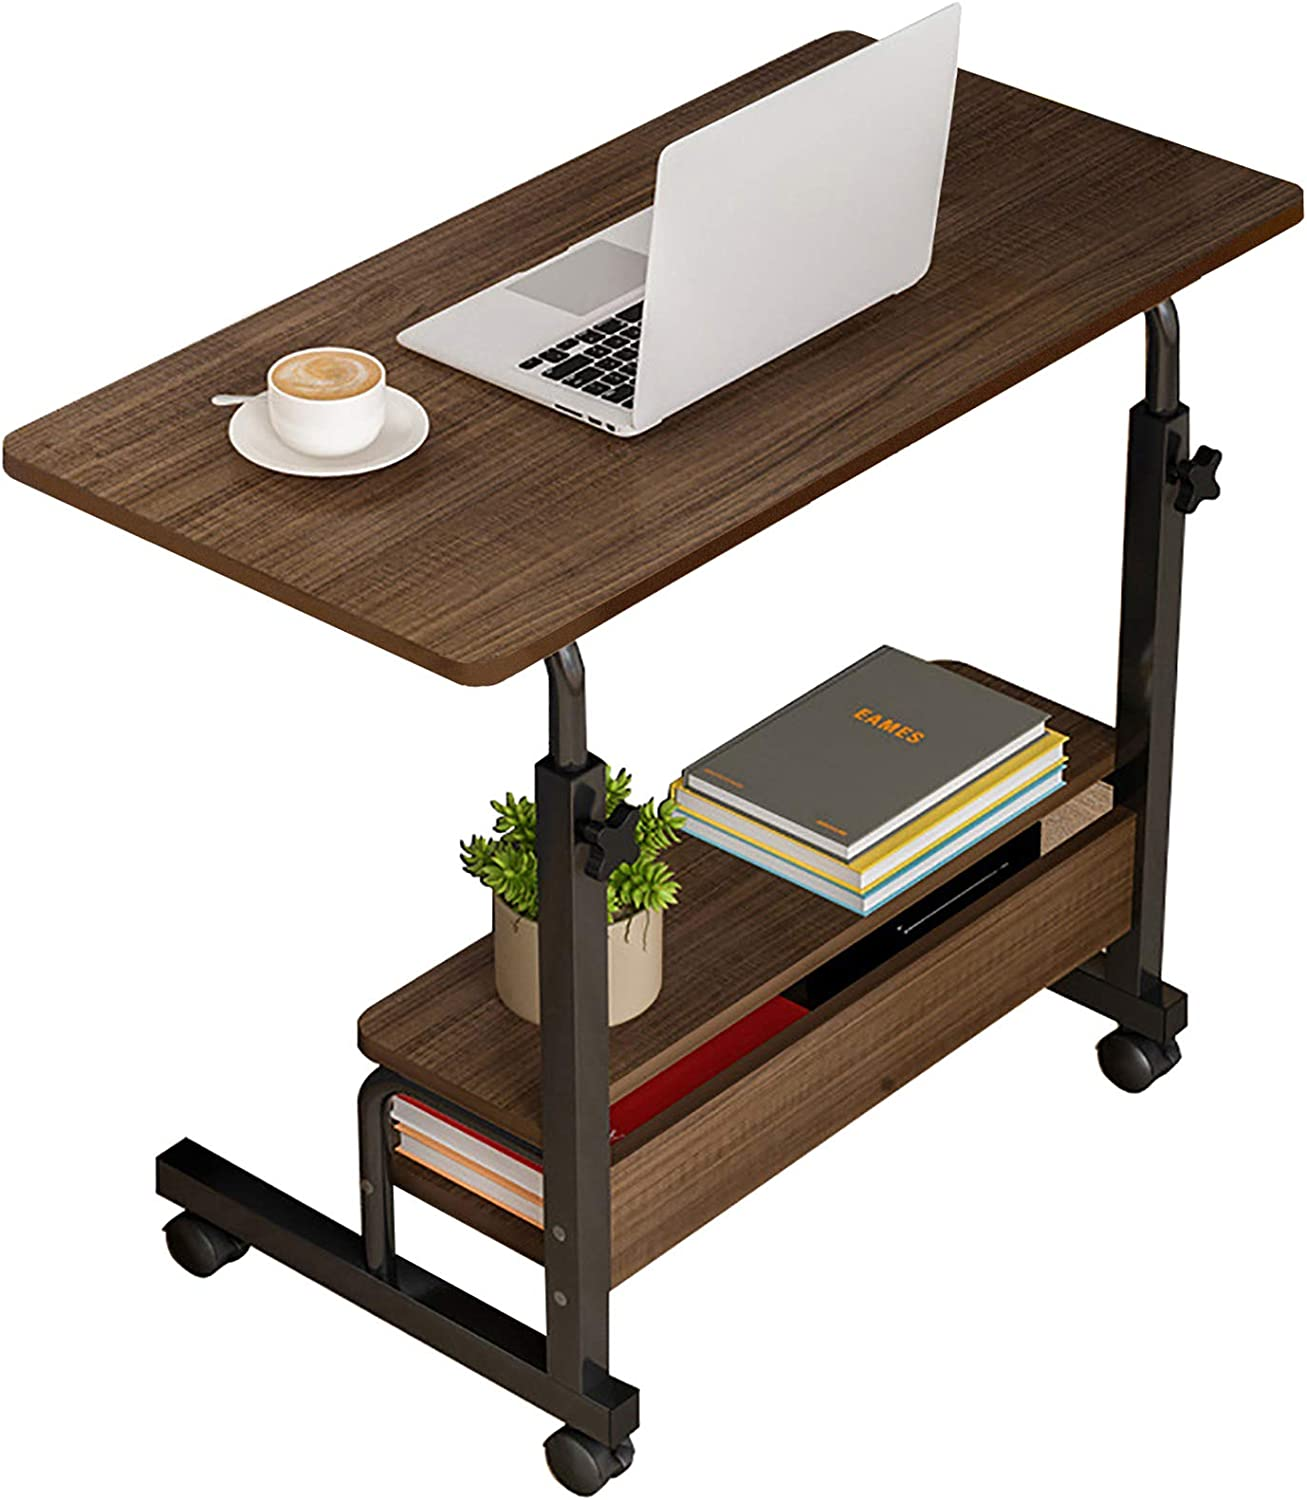 Computer Desk Home Office Desks, Standing Adjustable Laptop Desk for Small Spaces, Portable Work Writing Study Desk Table, Modern Pc Gaming Desk with Storage for Bedroom, Desktop Size 31.5x15.7 inch